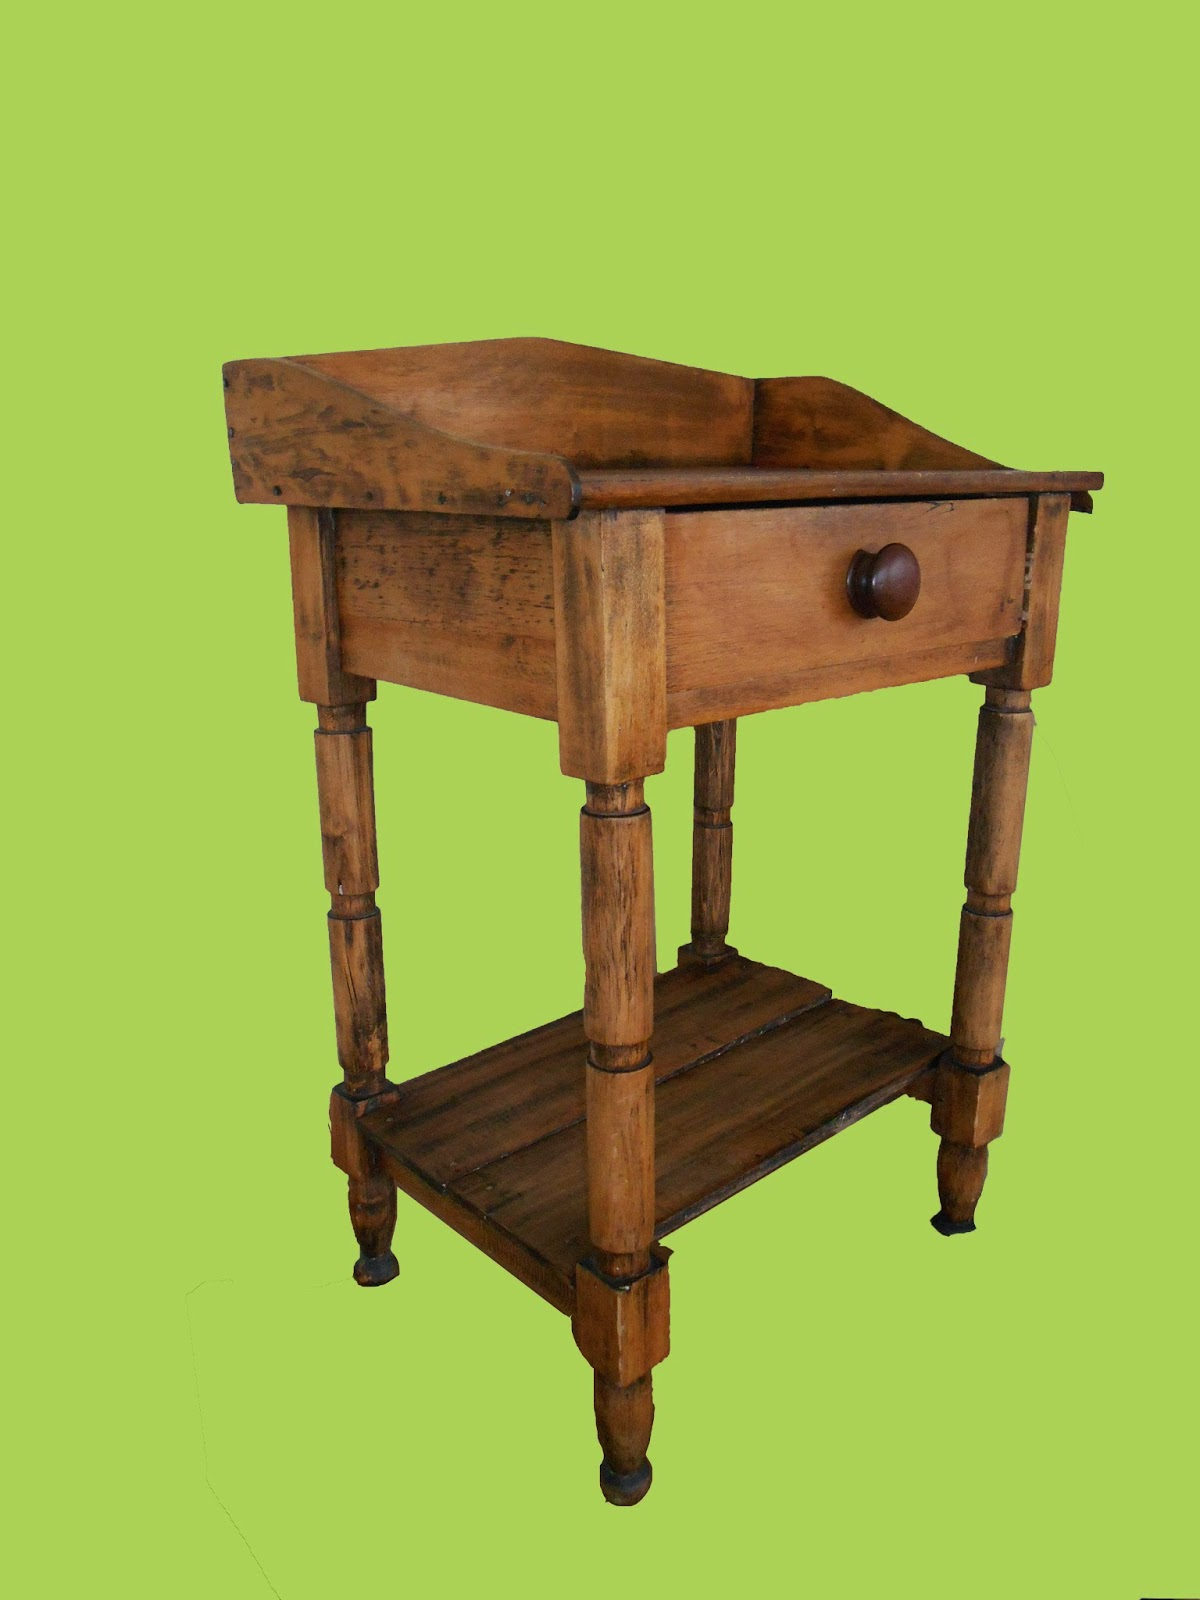 Uhuru furniture collectibles pine nightstand reduced for Reduced furniture